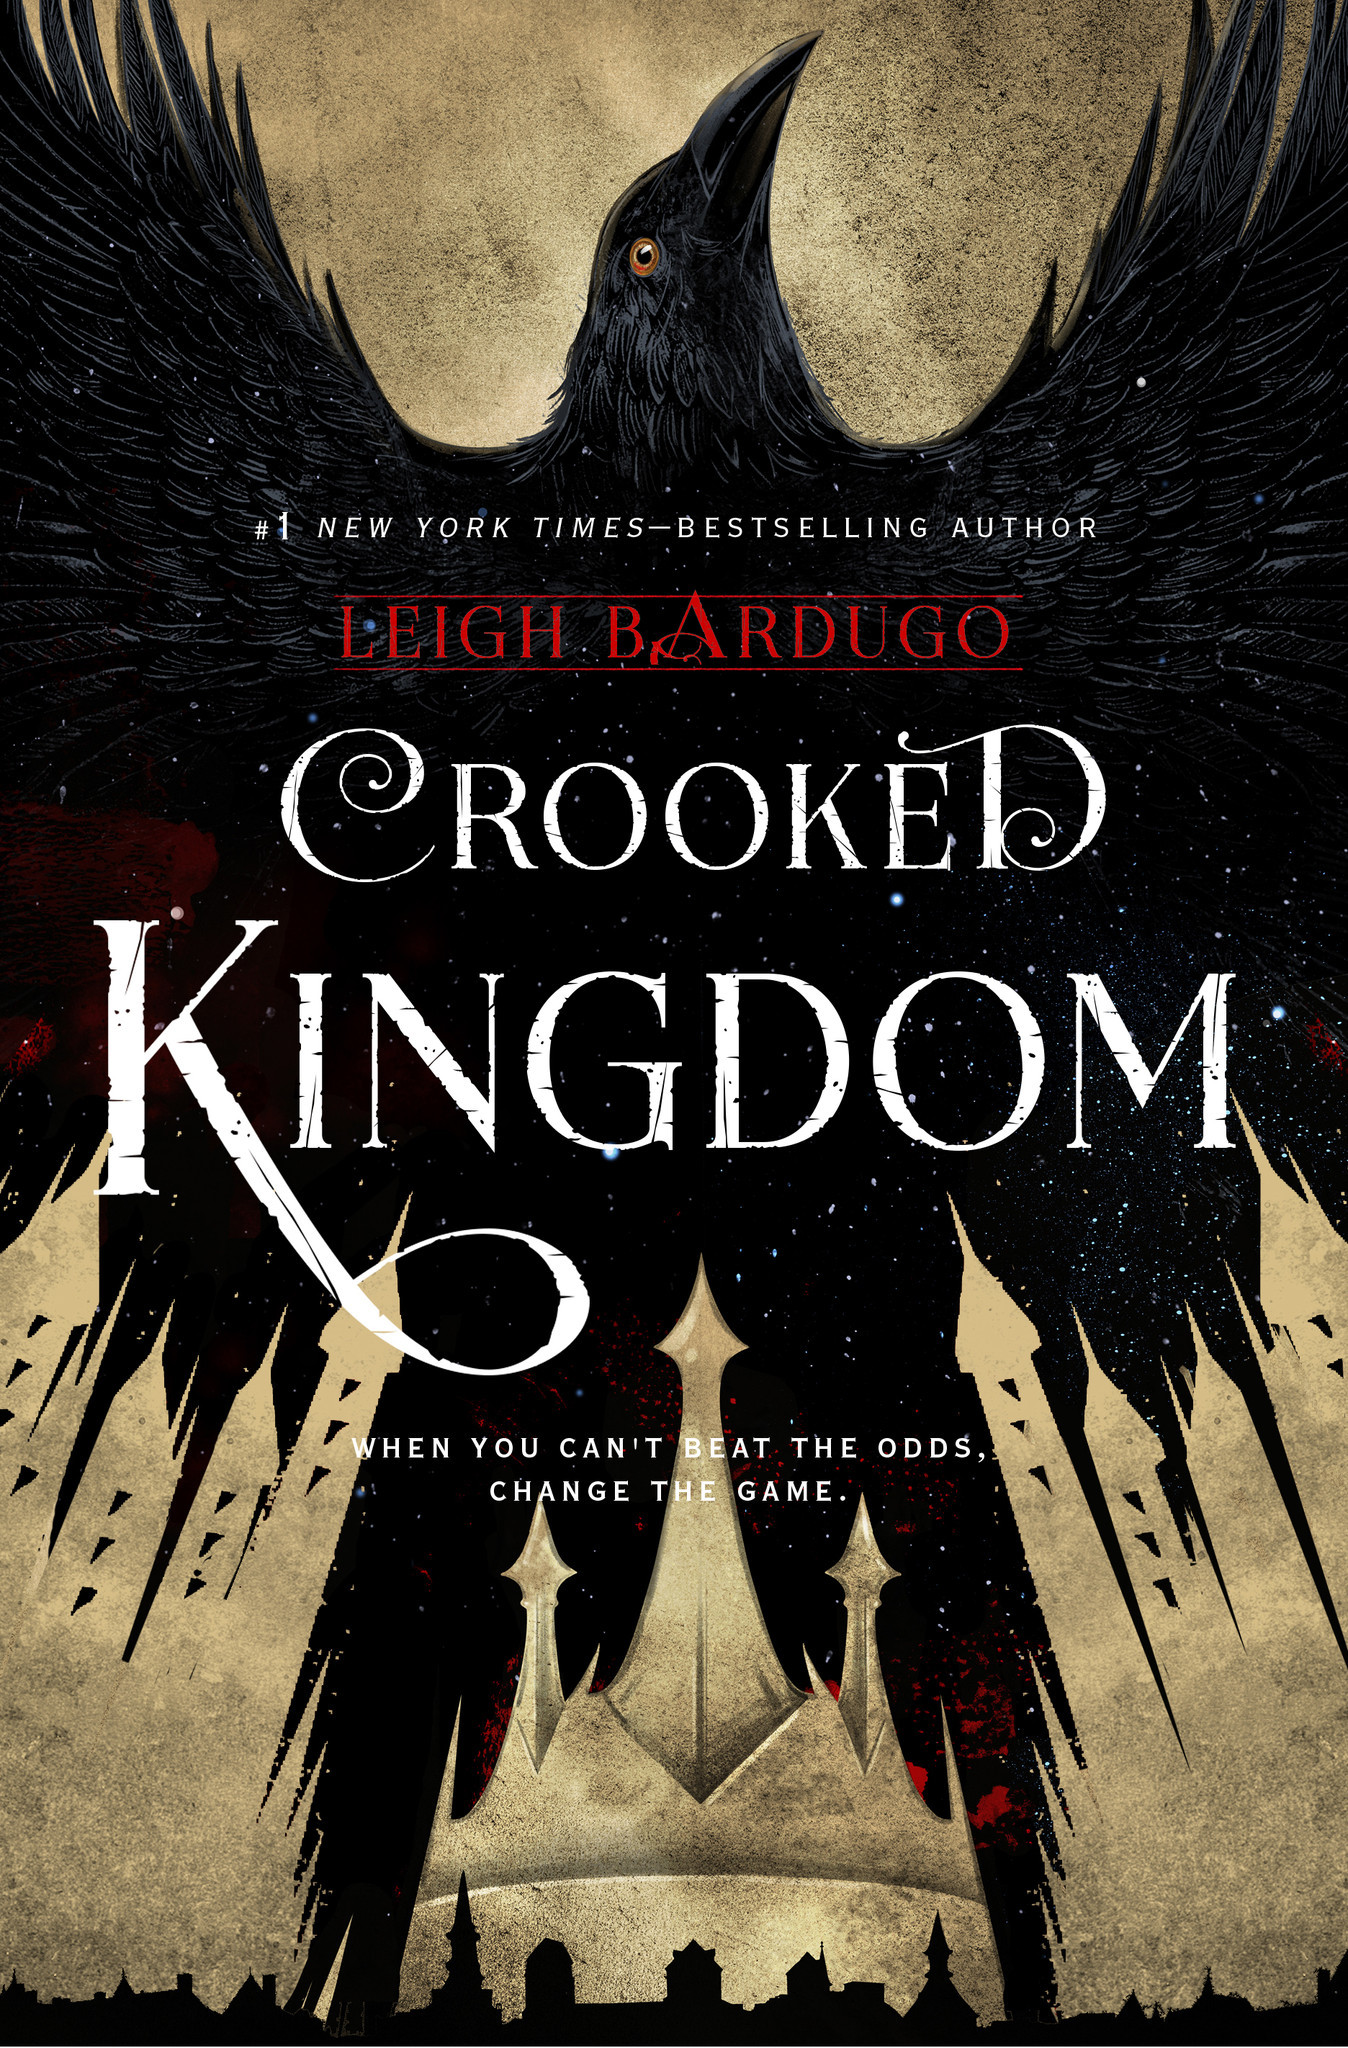 Image result for crooked kingdom book cover